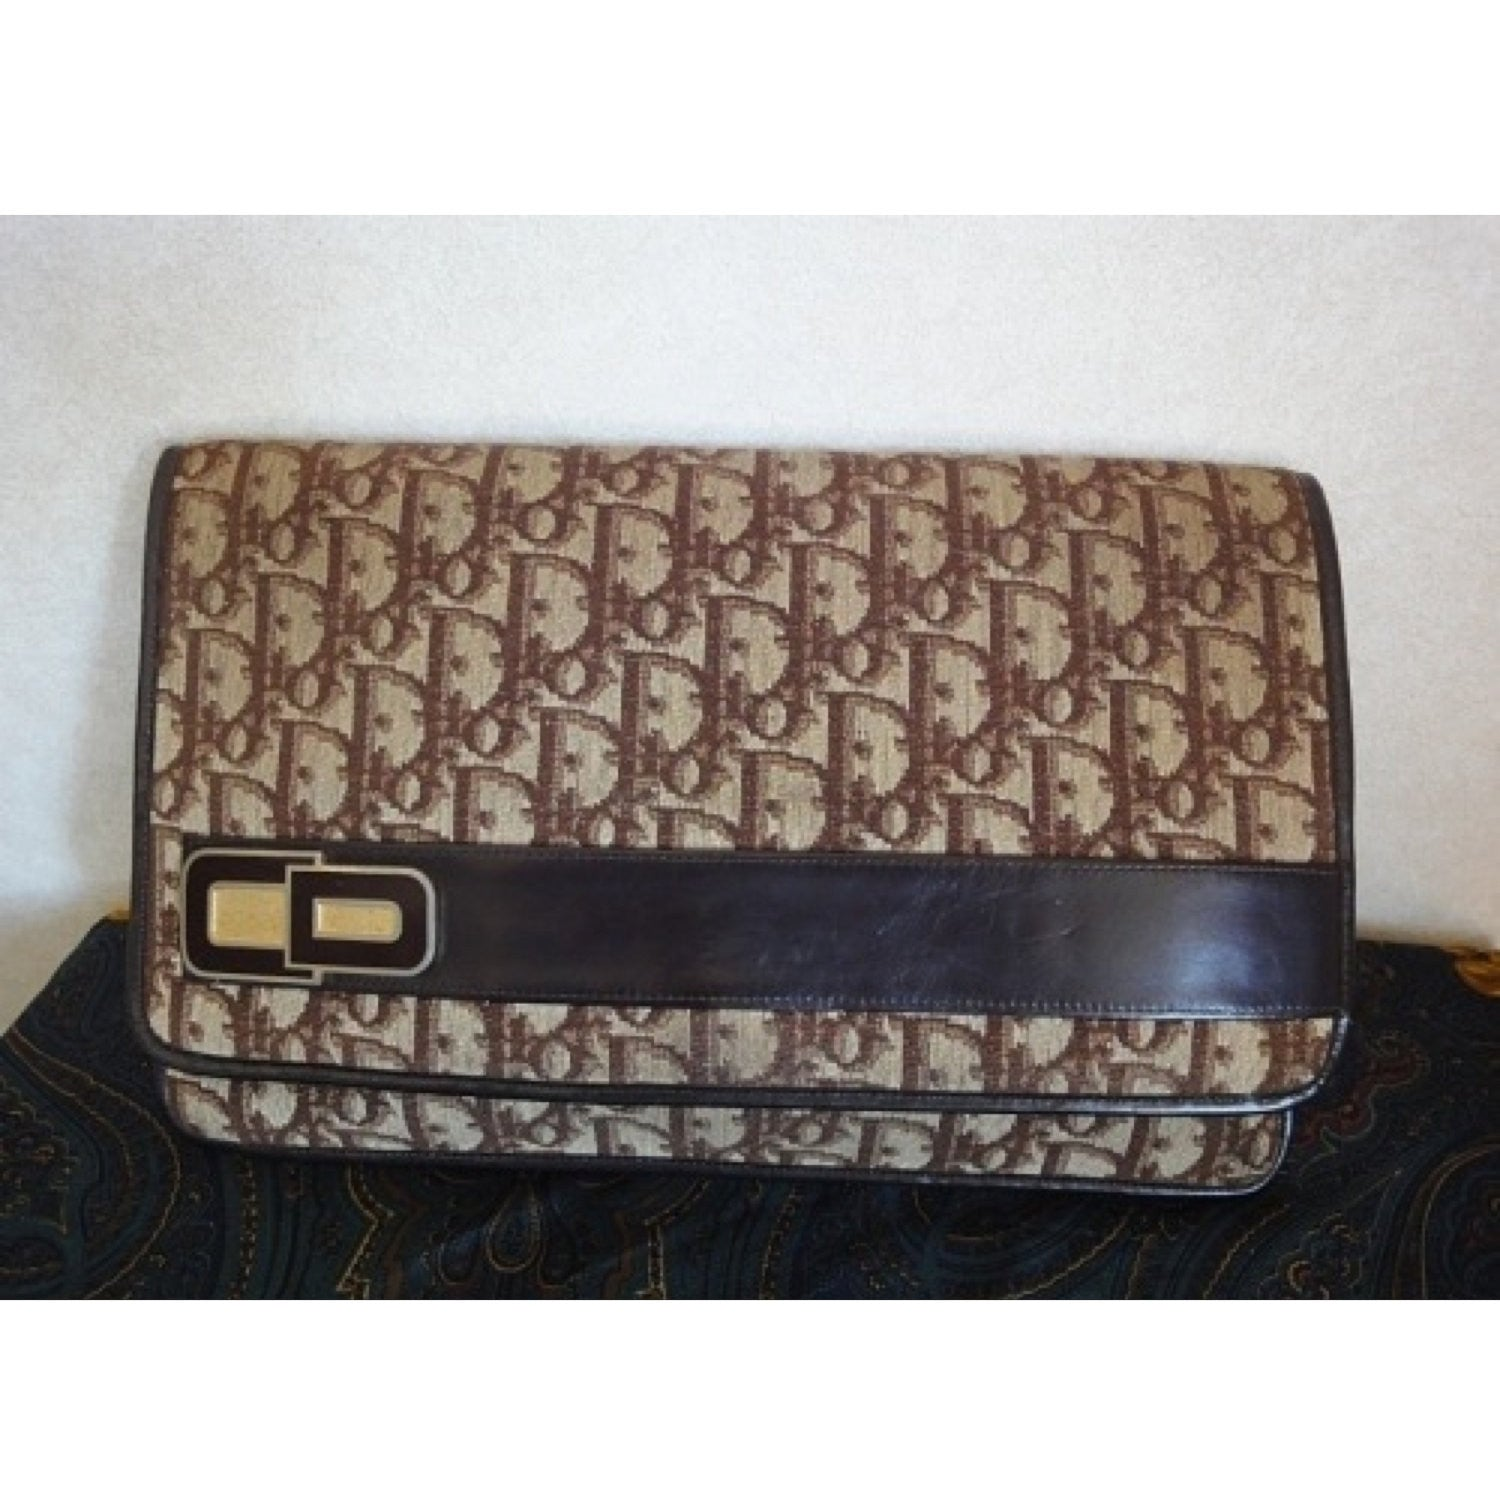 SOLD OUT: Vintage Christian Dior trotter jacquard long clutch purse with gold tone charm